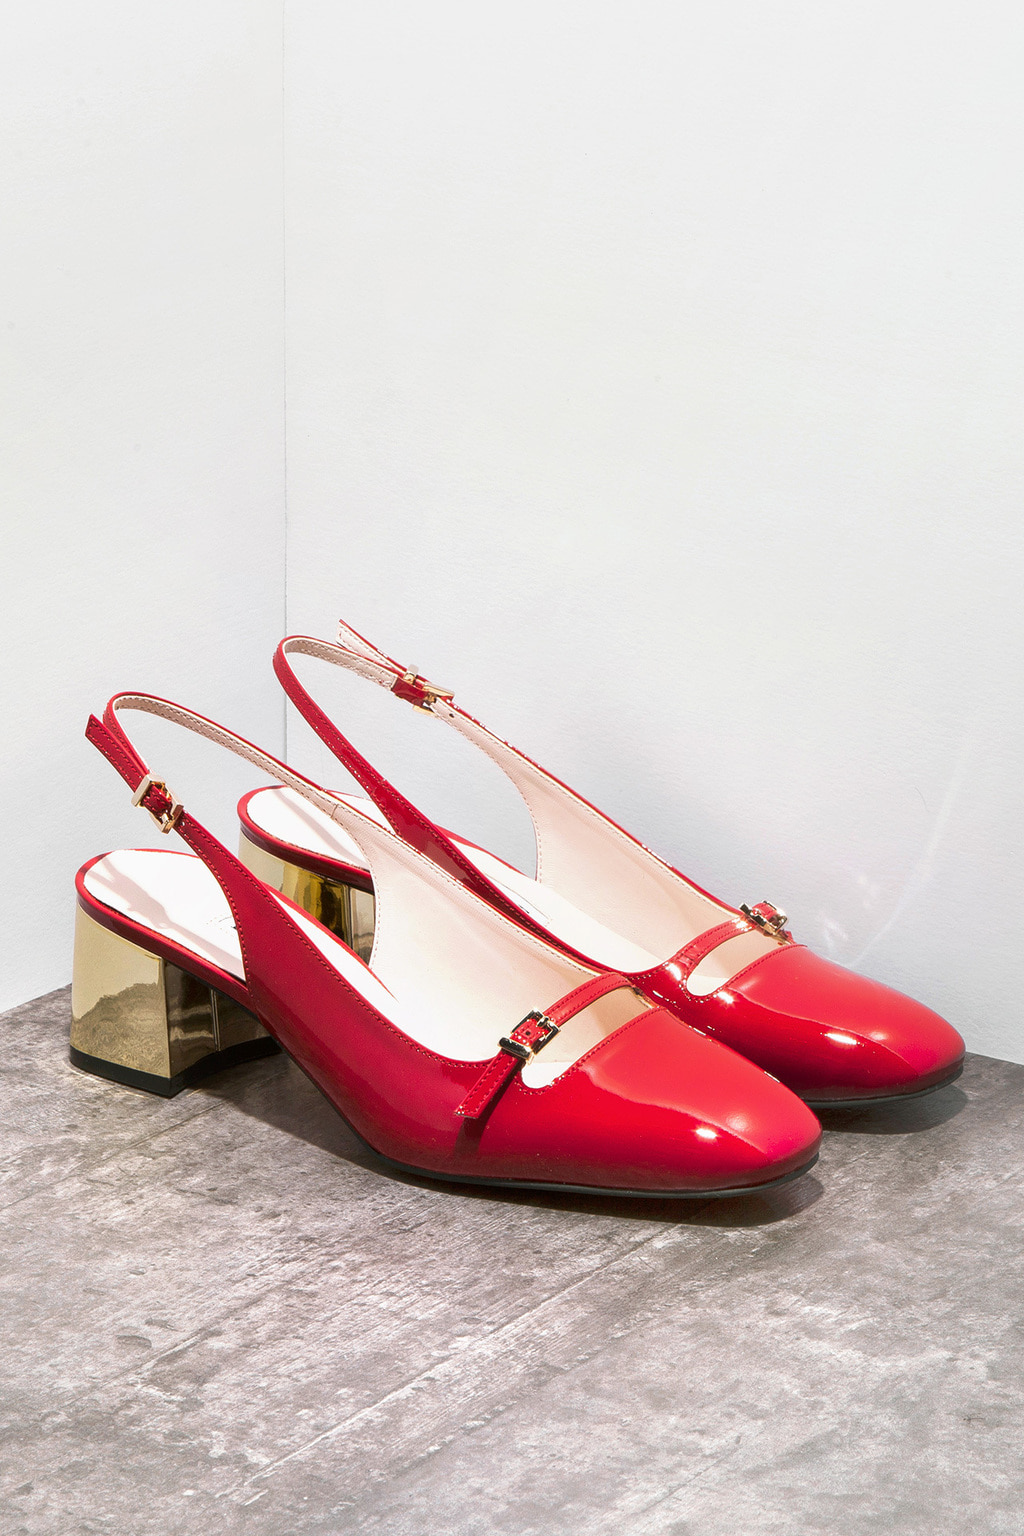 DORATORE Como Red-Gold - Women's Shoes : Republic of Korea